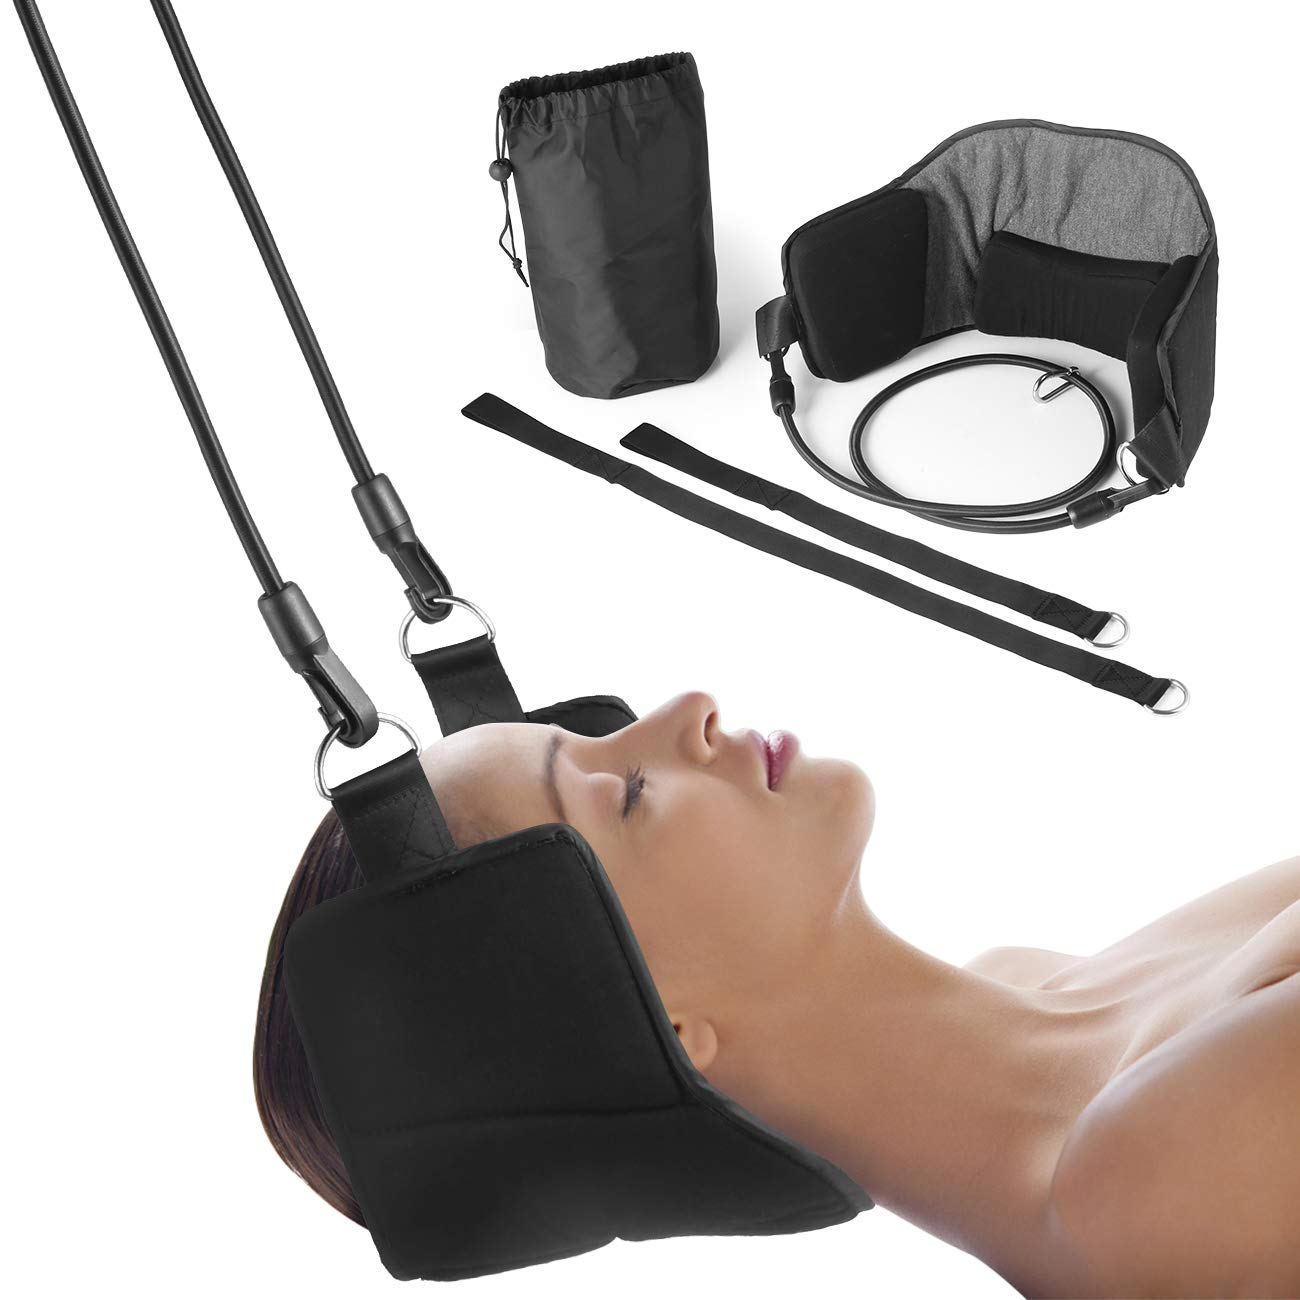 MIGO Hammock for Neck Pain Relief, Portable Cervical Traction and Relaxation Device, Perfect for Muscles Pain Relief Relax in Car Office and Home (Black)